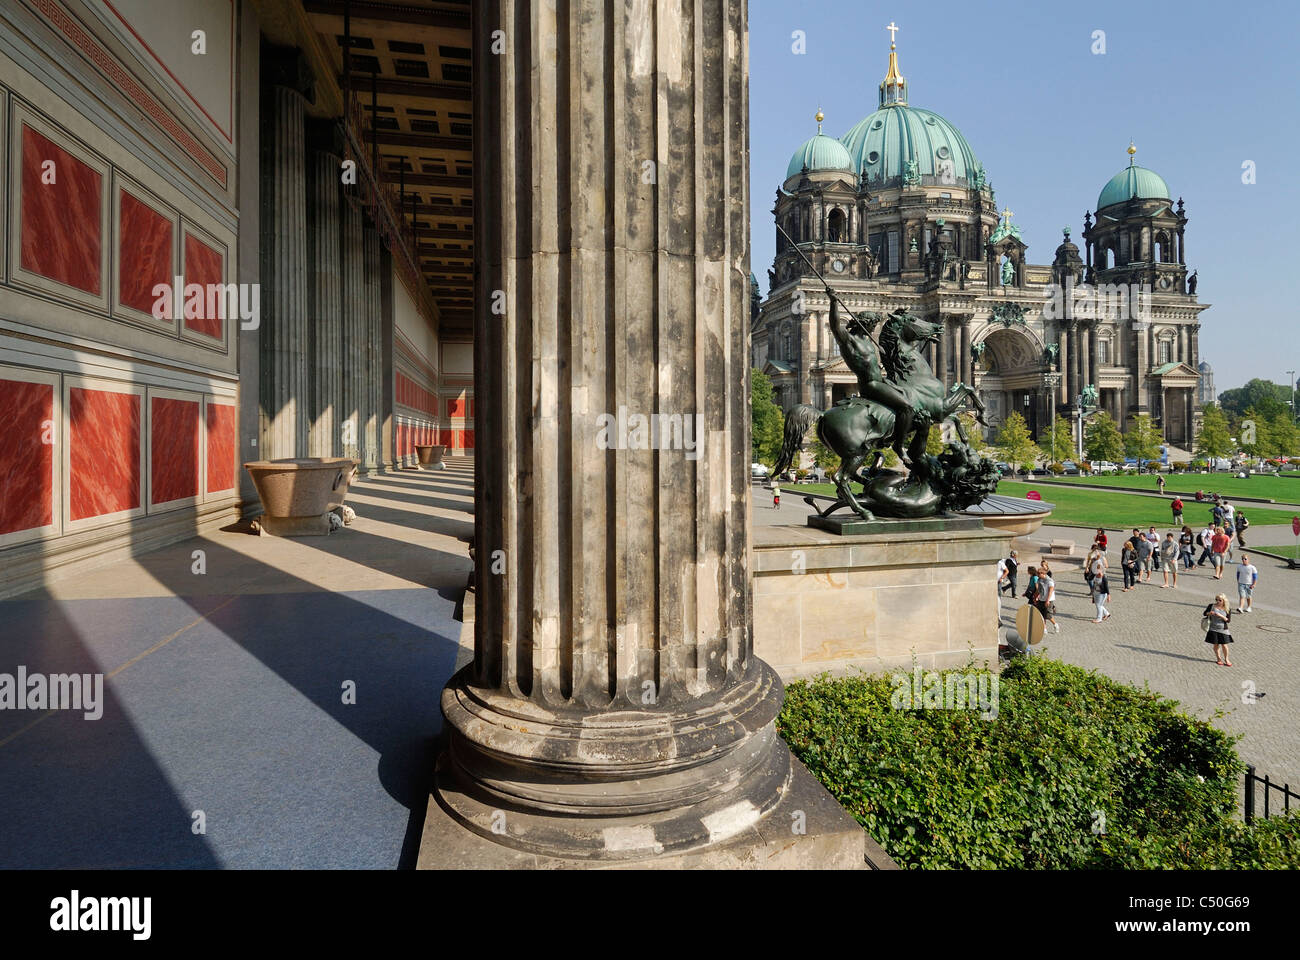 Berlin. Germany. Altes Museum (foreground) & the Berliner Dom / Cathedral, Lustgarten. - Stock Image